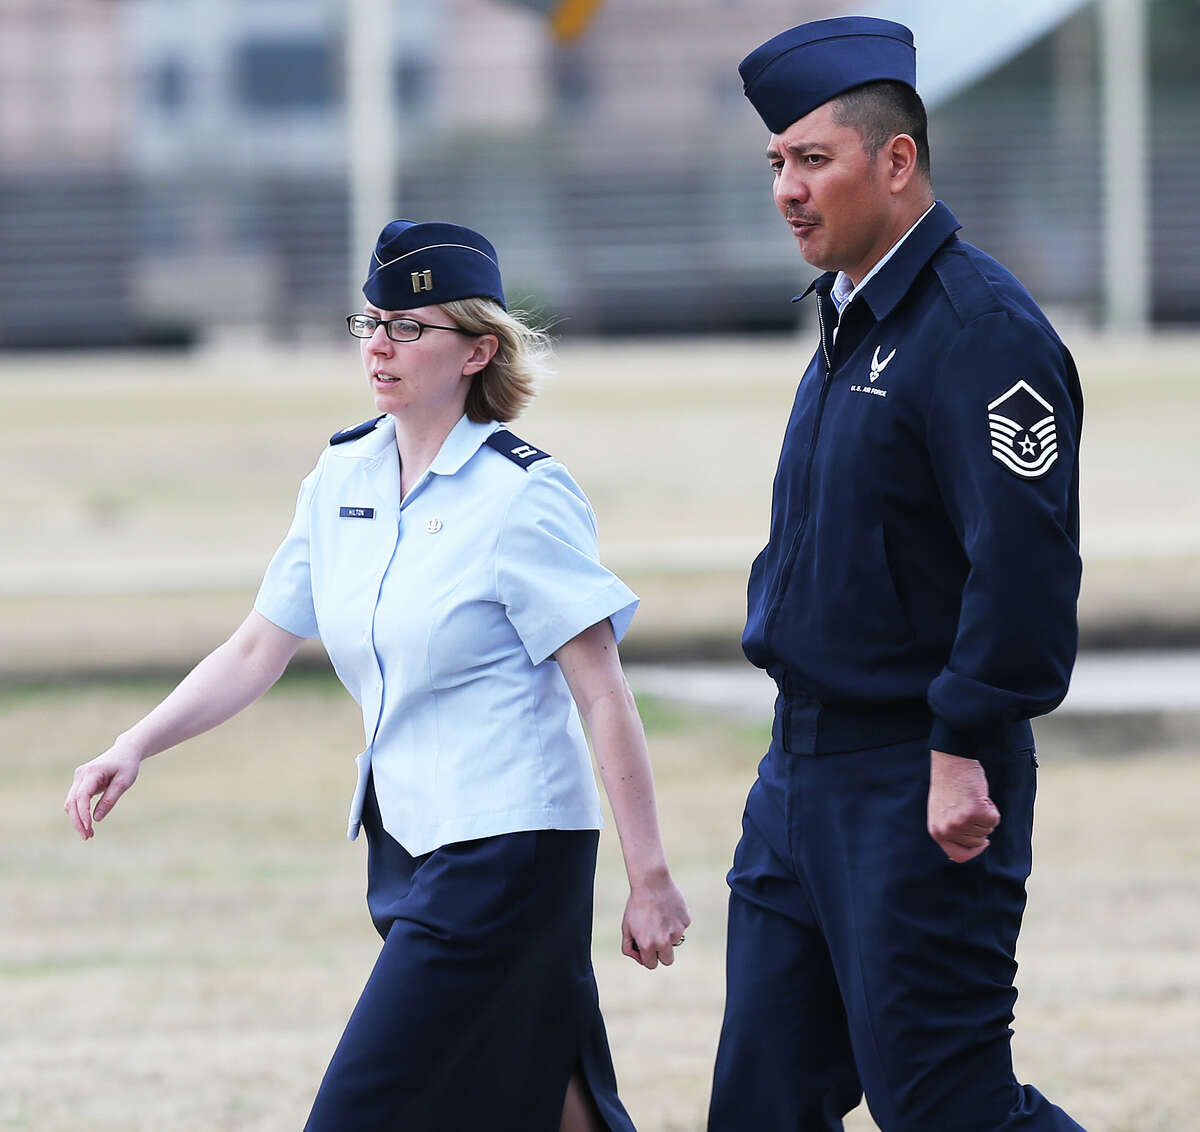 U.S. Air Force Master Sgt. Michael Silva, right, leaves an Article 32 hearing at Lackland Air Force, Monday, Feb. 24, 2013. Silva is charged with raping three women over the past 21 years. He faces life in prison if convicted.